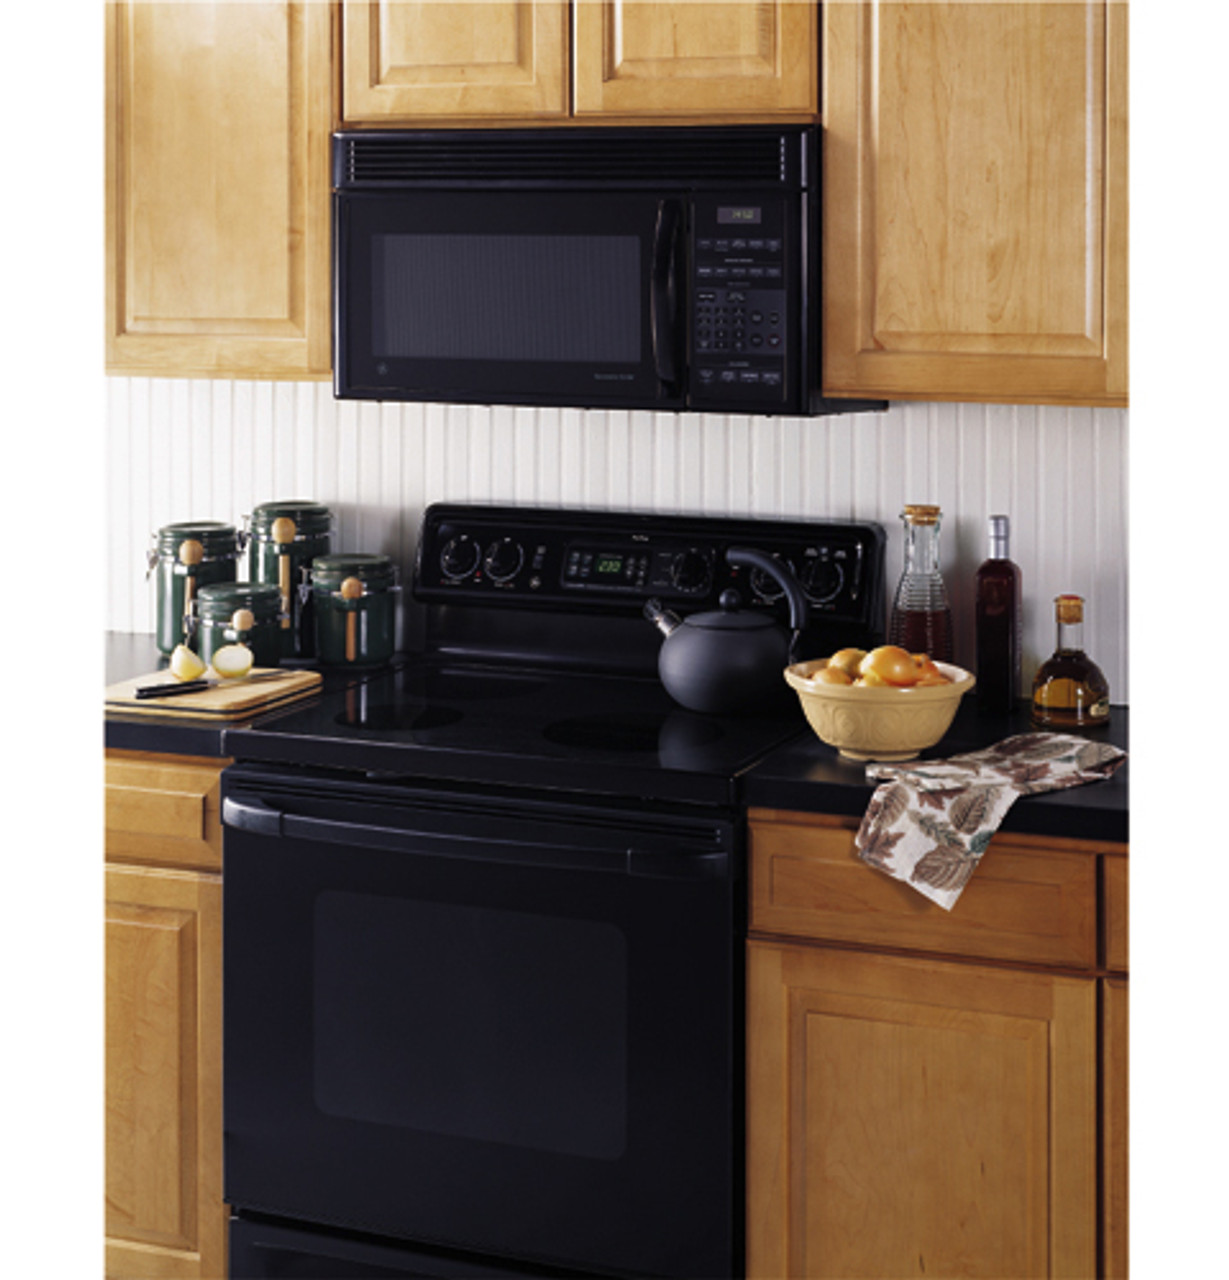 ge spacemaker xl over the range microwave oven jvm1450wc